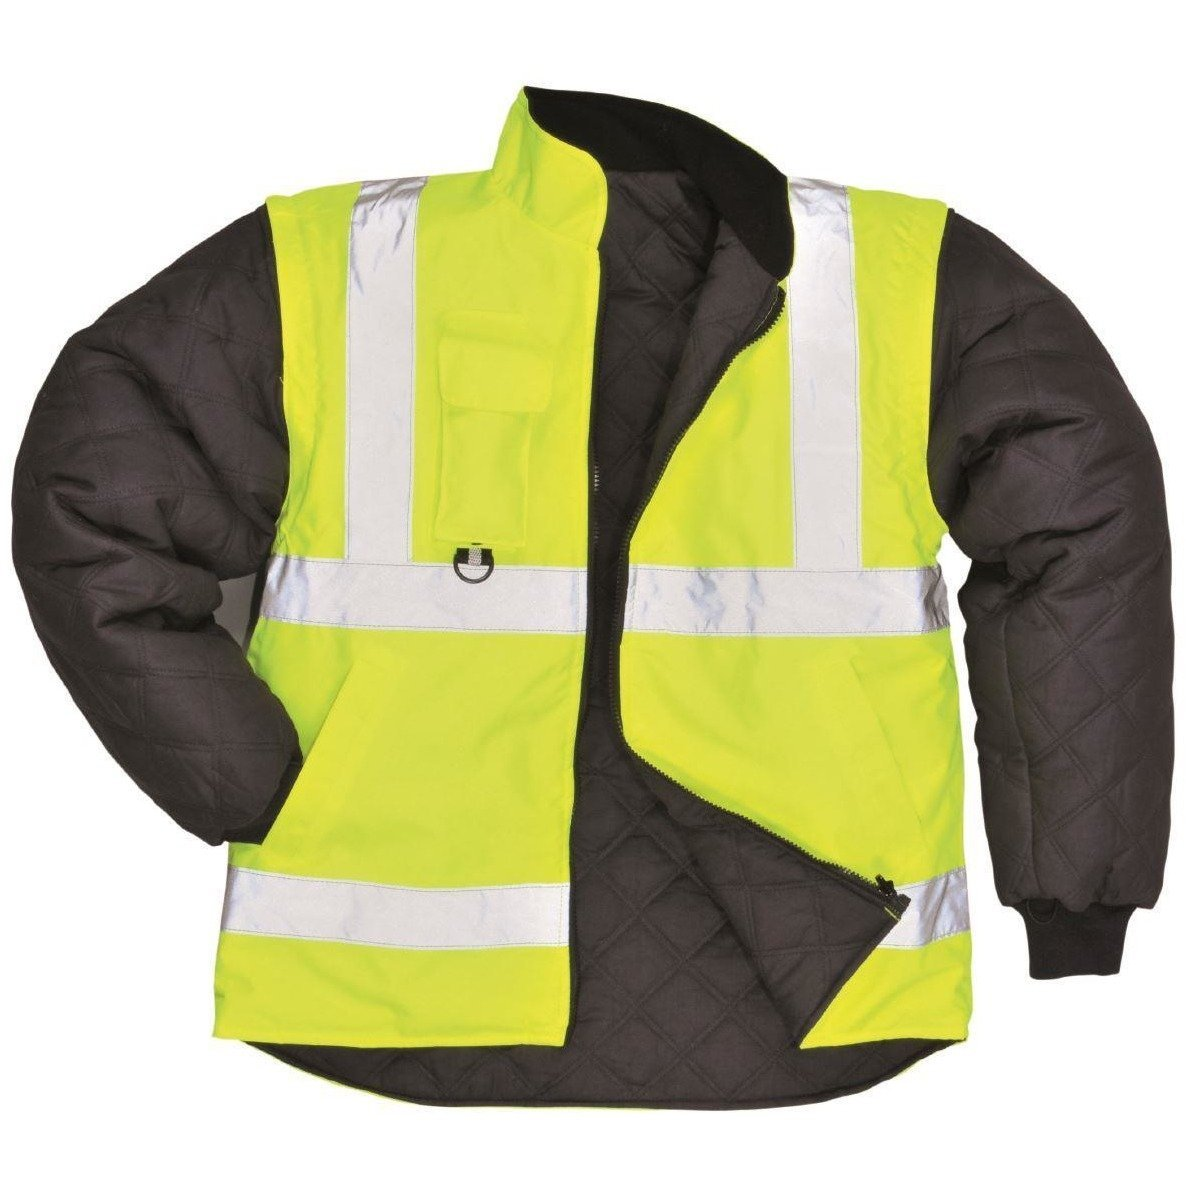 Portwest Hi-Vis 7-in-1 Traffic Jacket S427 - reid outdoors